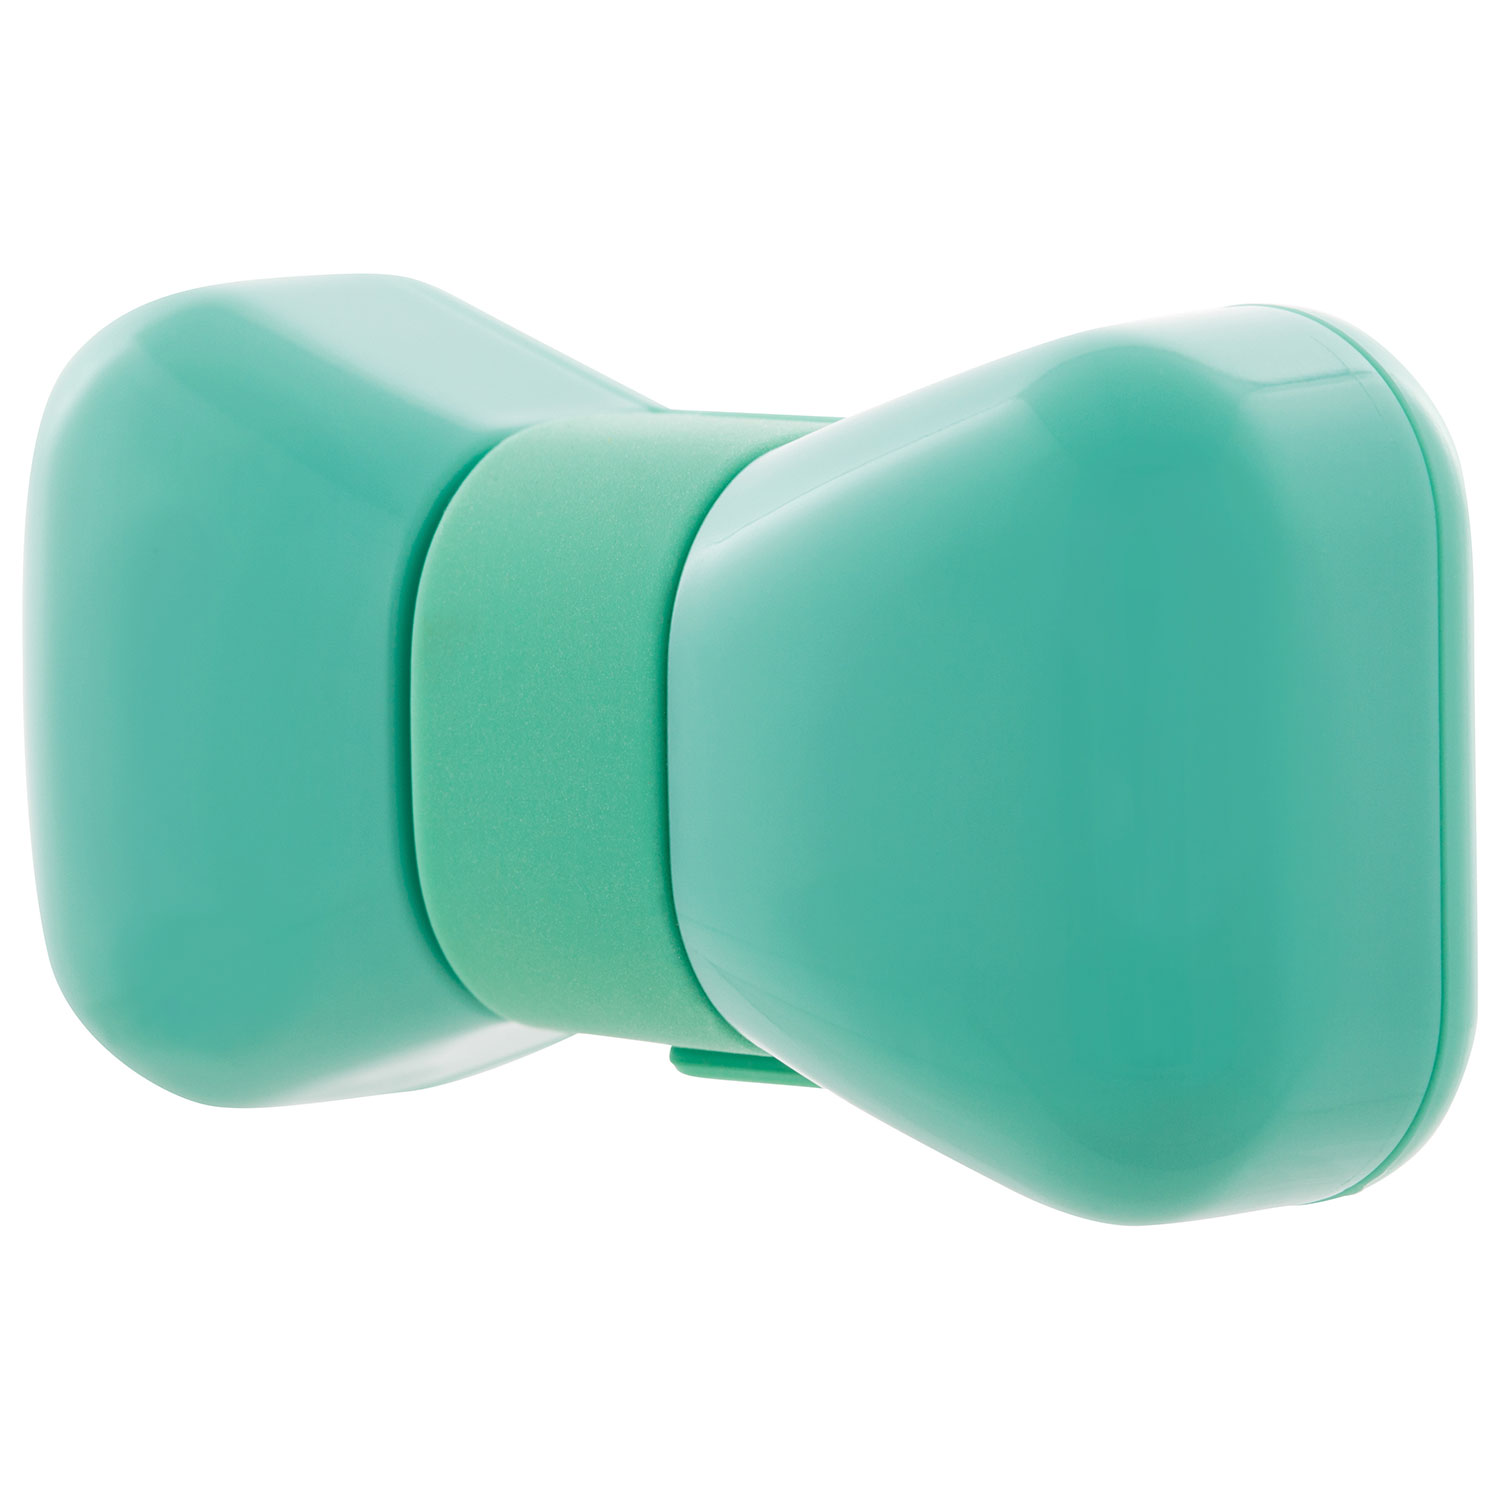 Wonderwoof Bowtie Dog Activity Tracker With Bluetooth Bluegreen Only At Best Buy